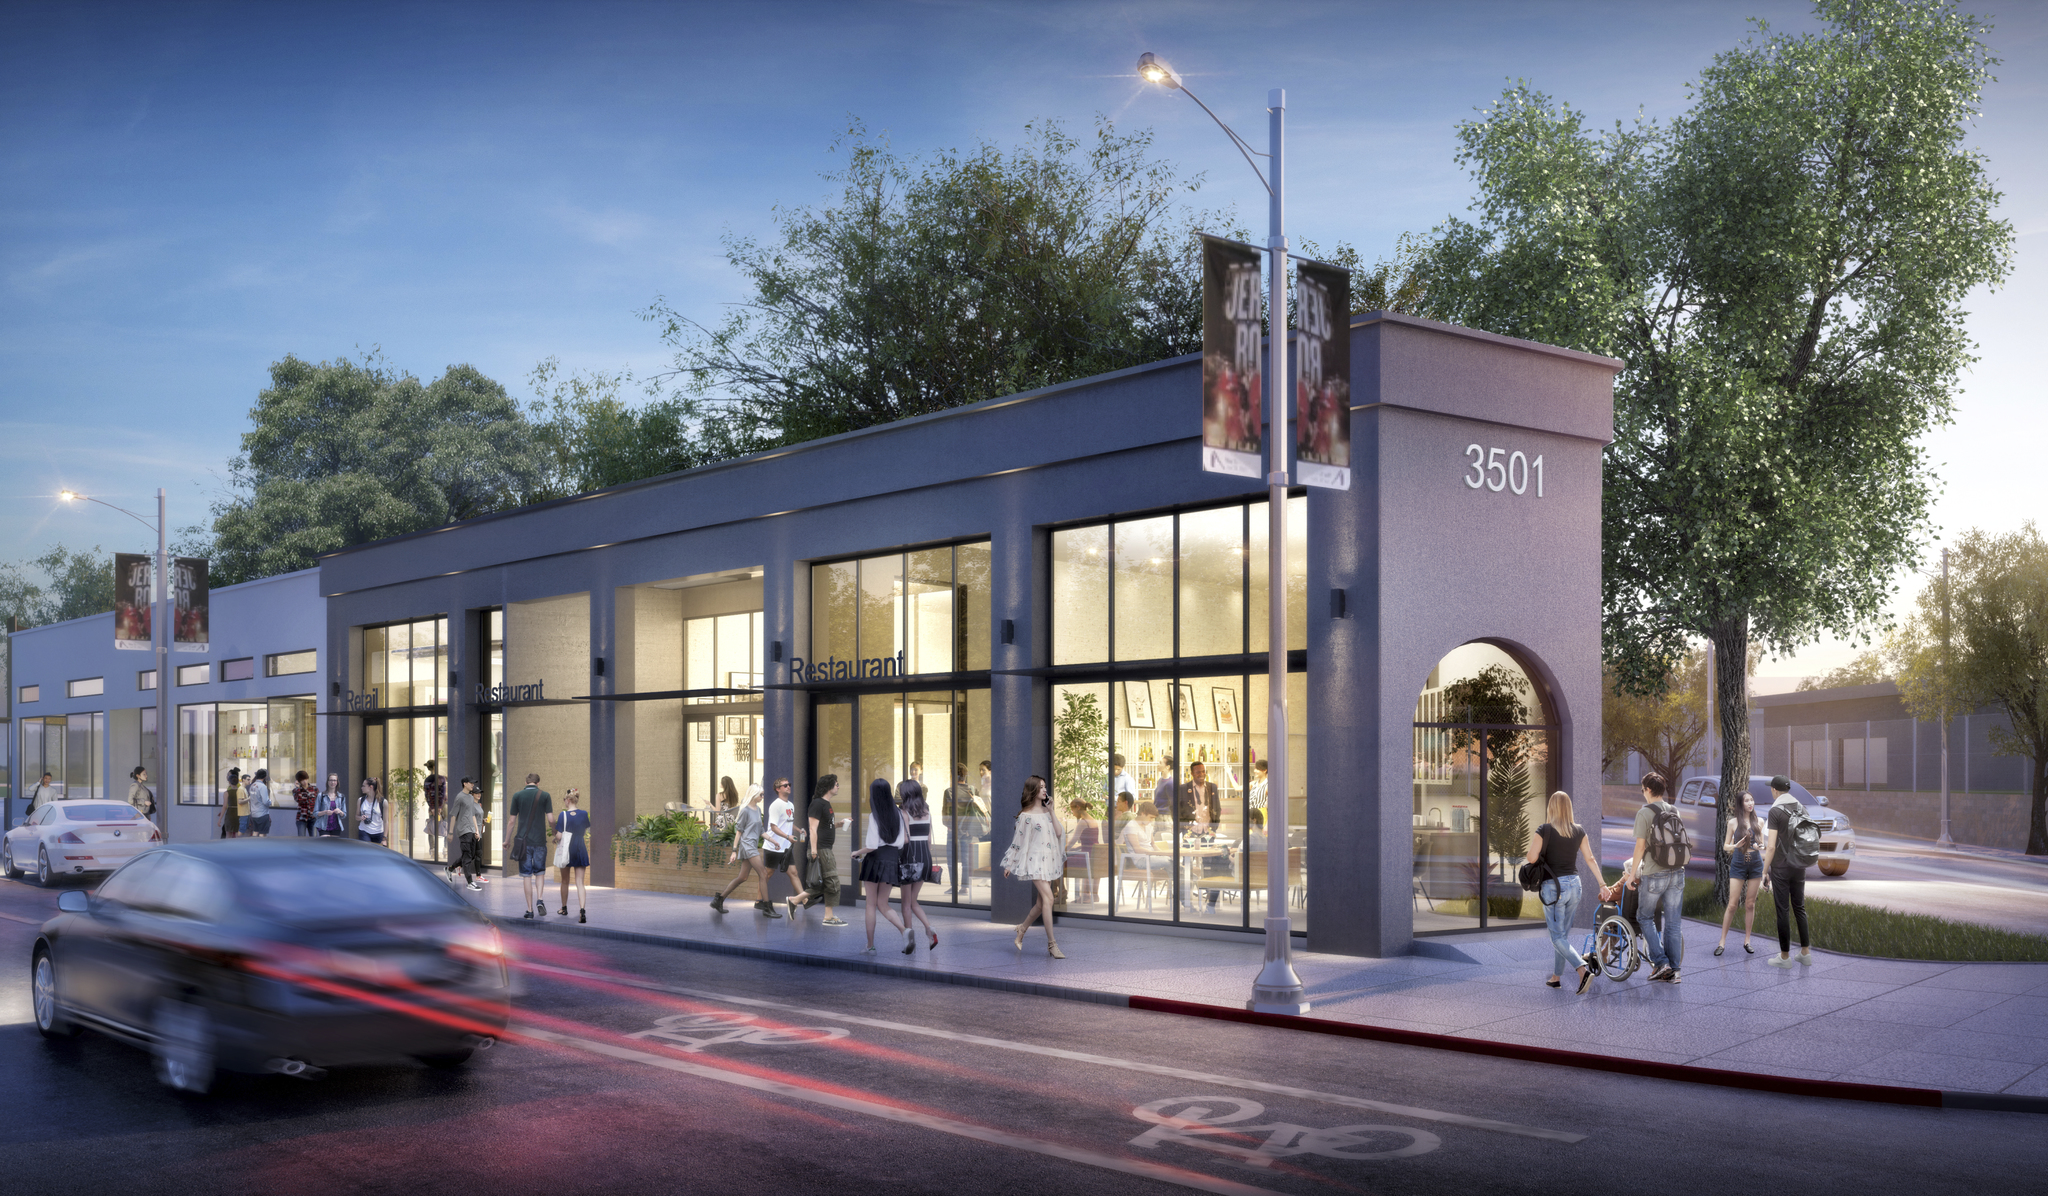 Rendering of 3501 W Sunset Blvd